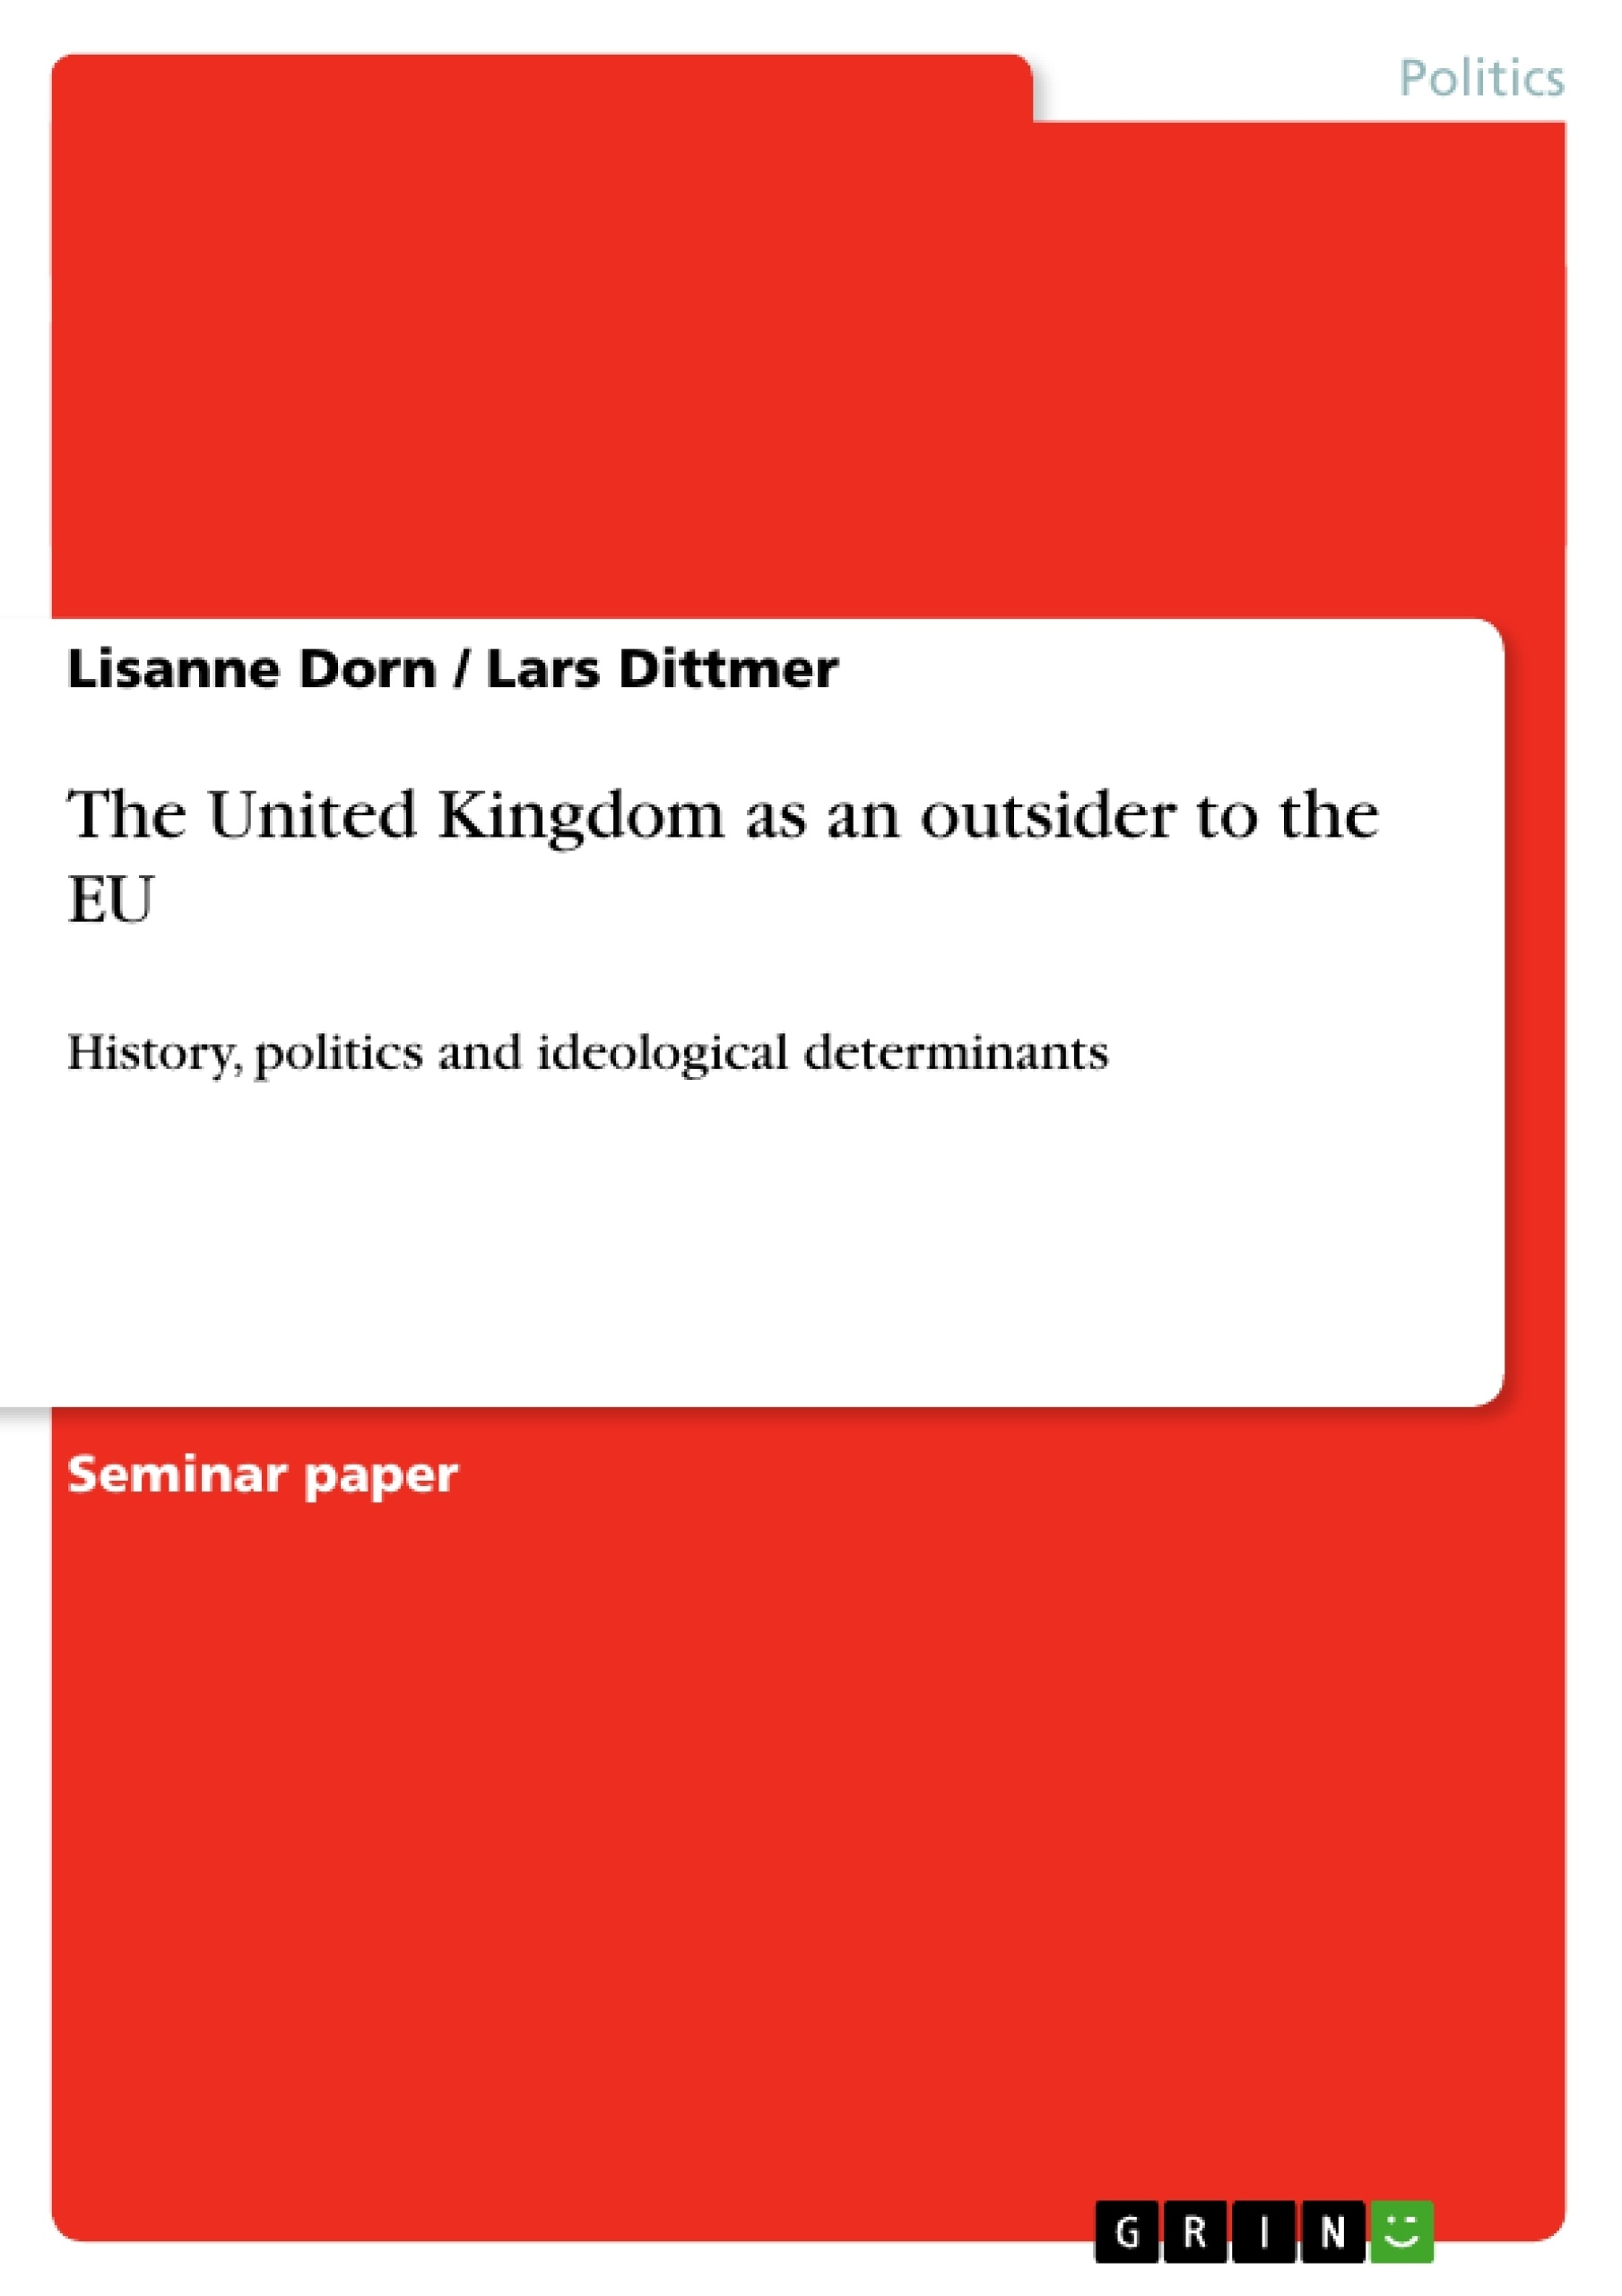 Title: The United Kingdom as an outsider to the EU